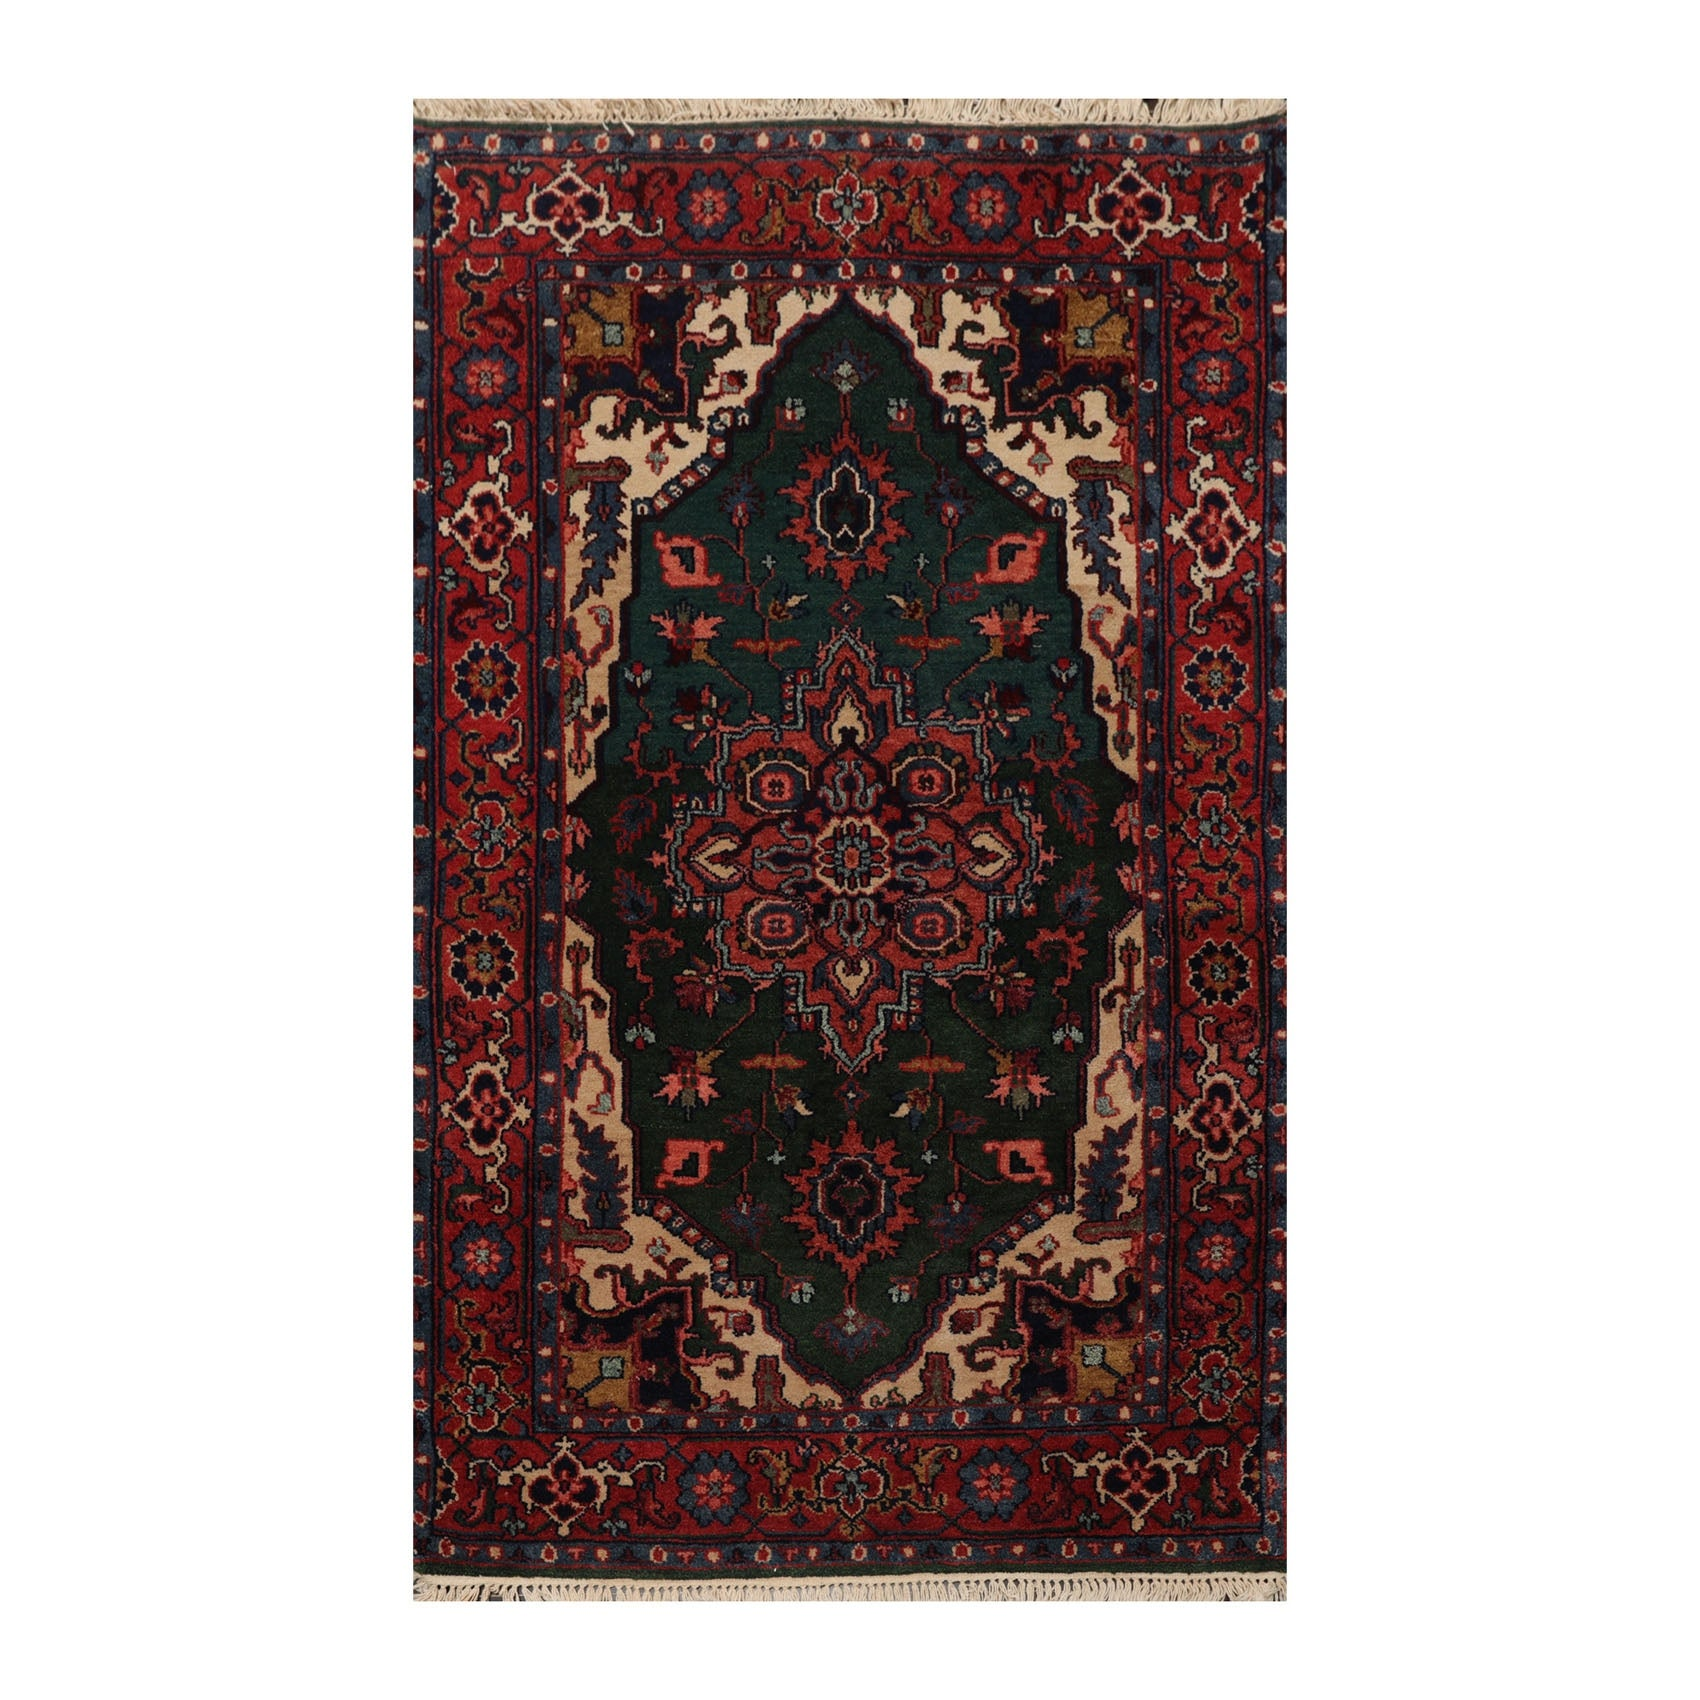 Hand Knotted Heriz Emerald Rust Persian Wool Traditional Oriental Area Rug 4x6 4 3 X 6 1 Overstock 33213401